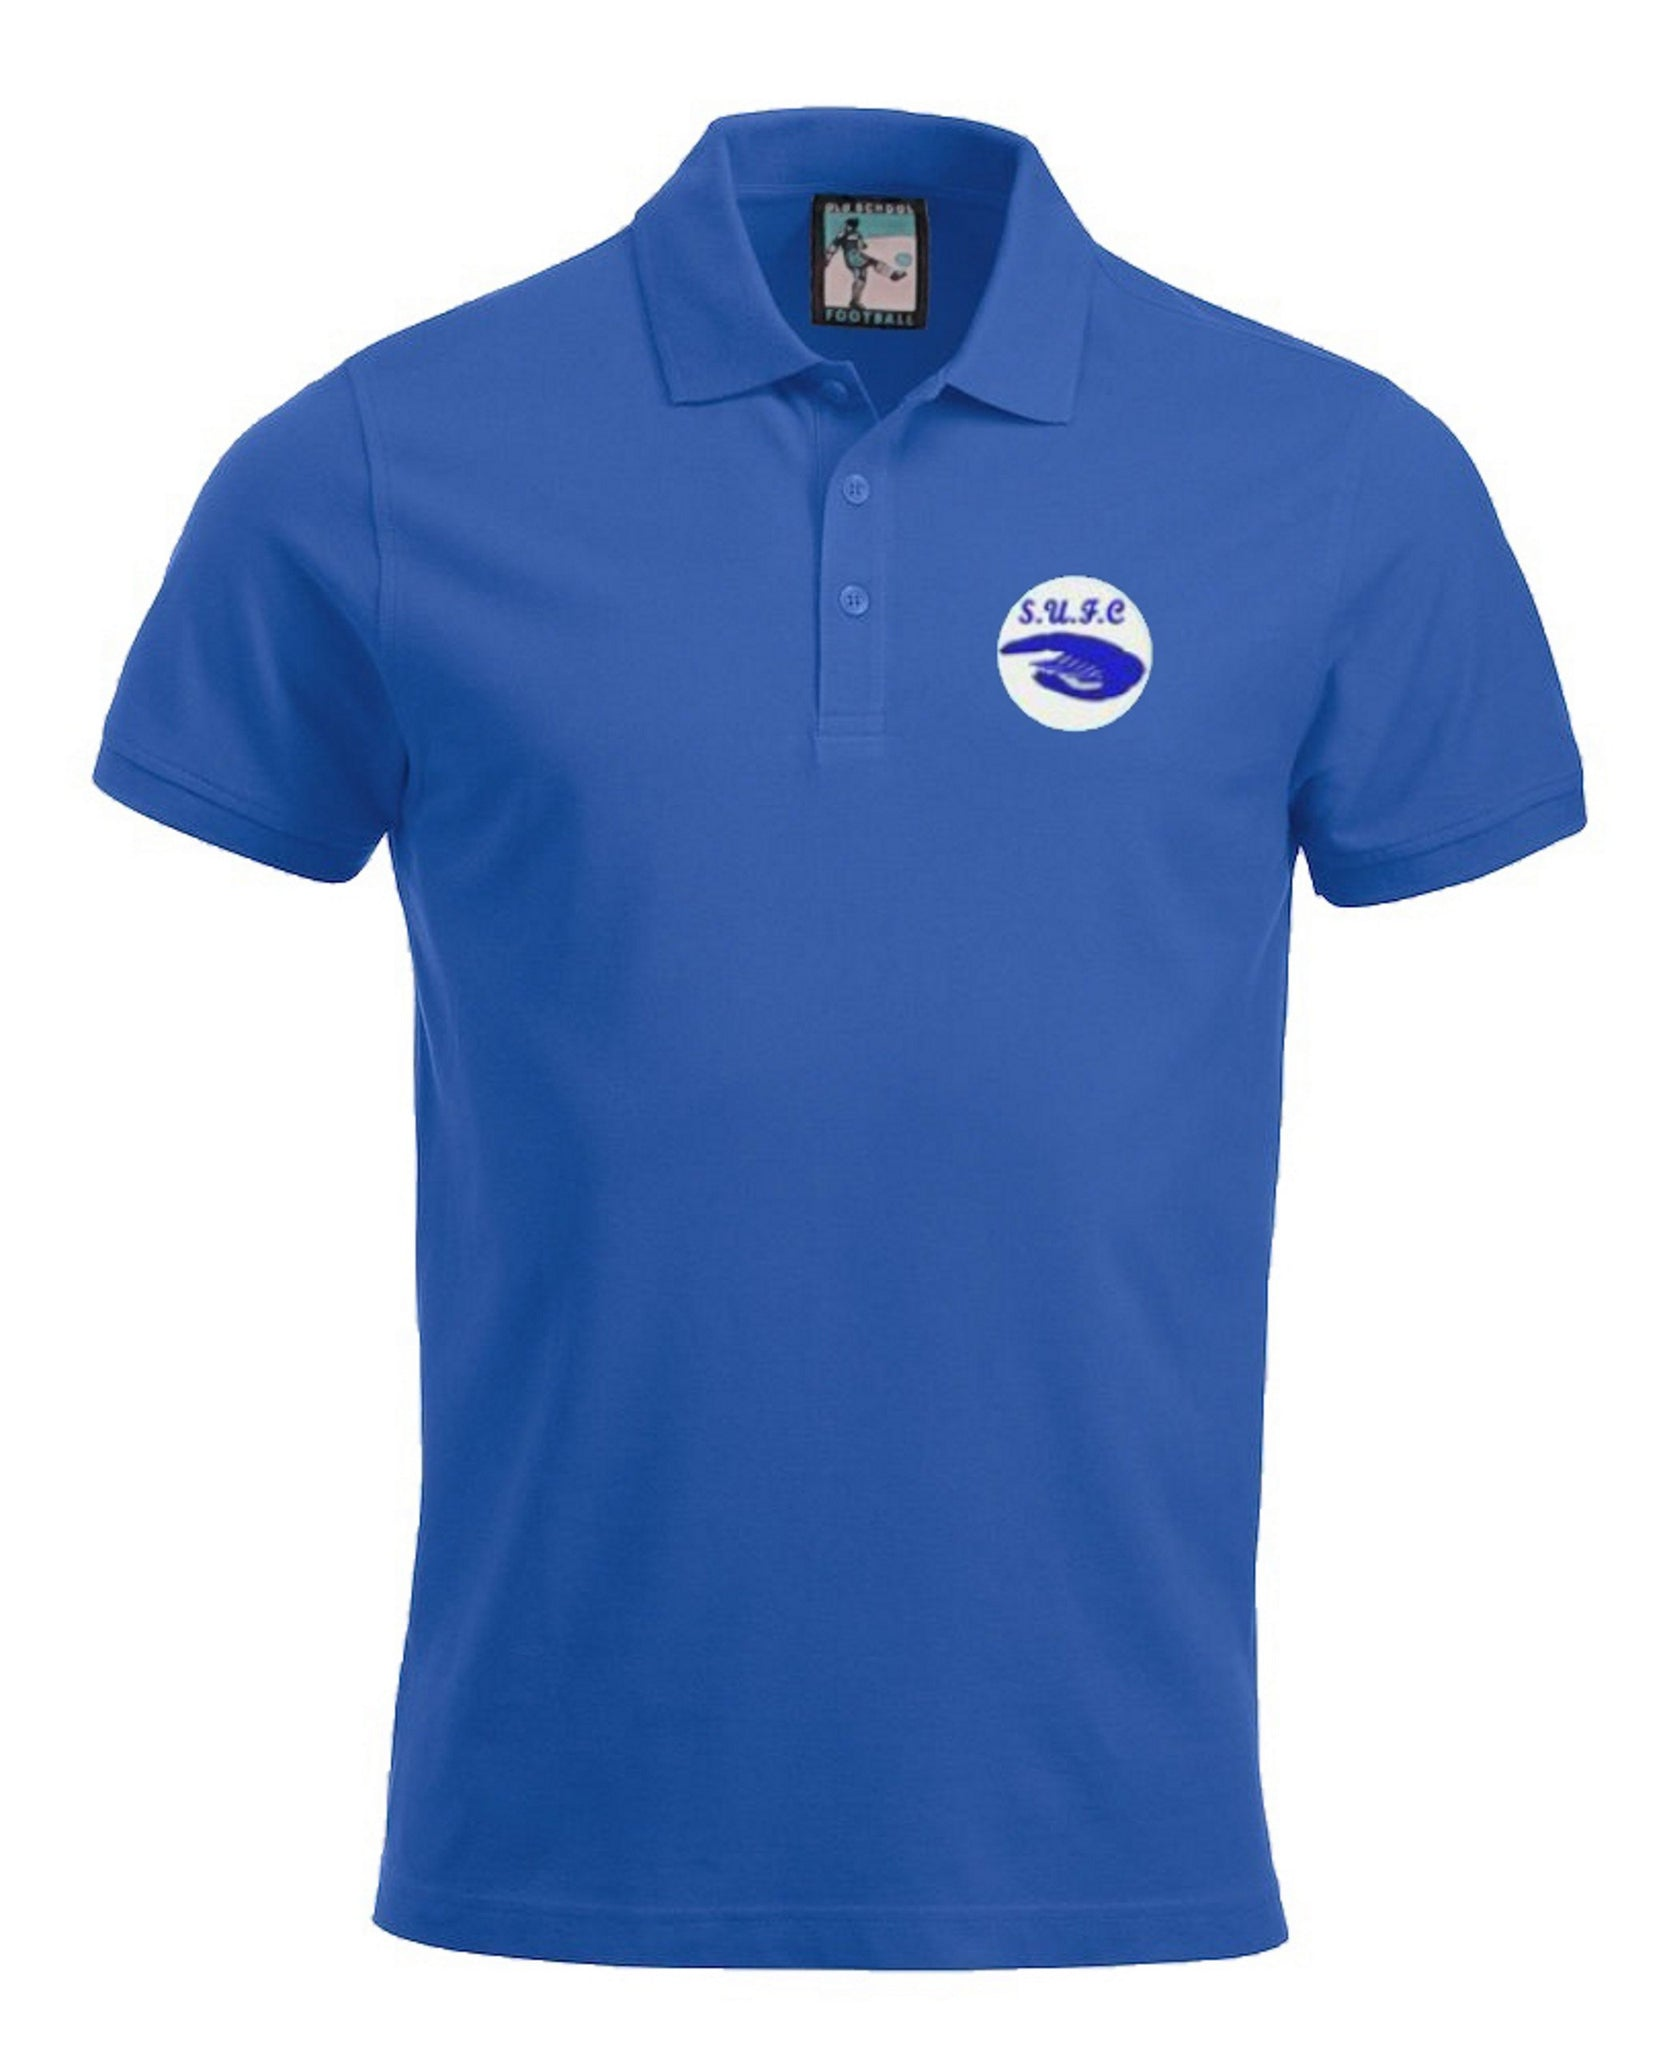 Southend United Polo - Old School Football